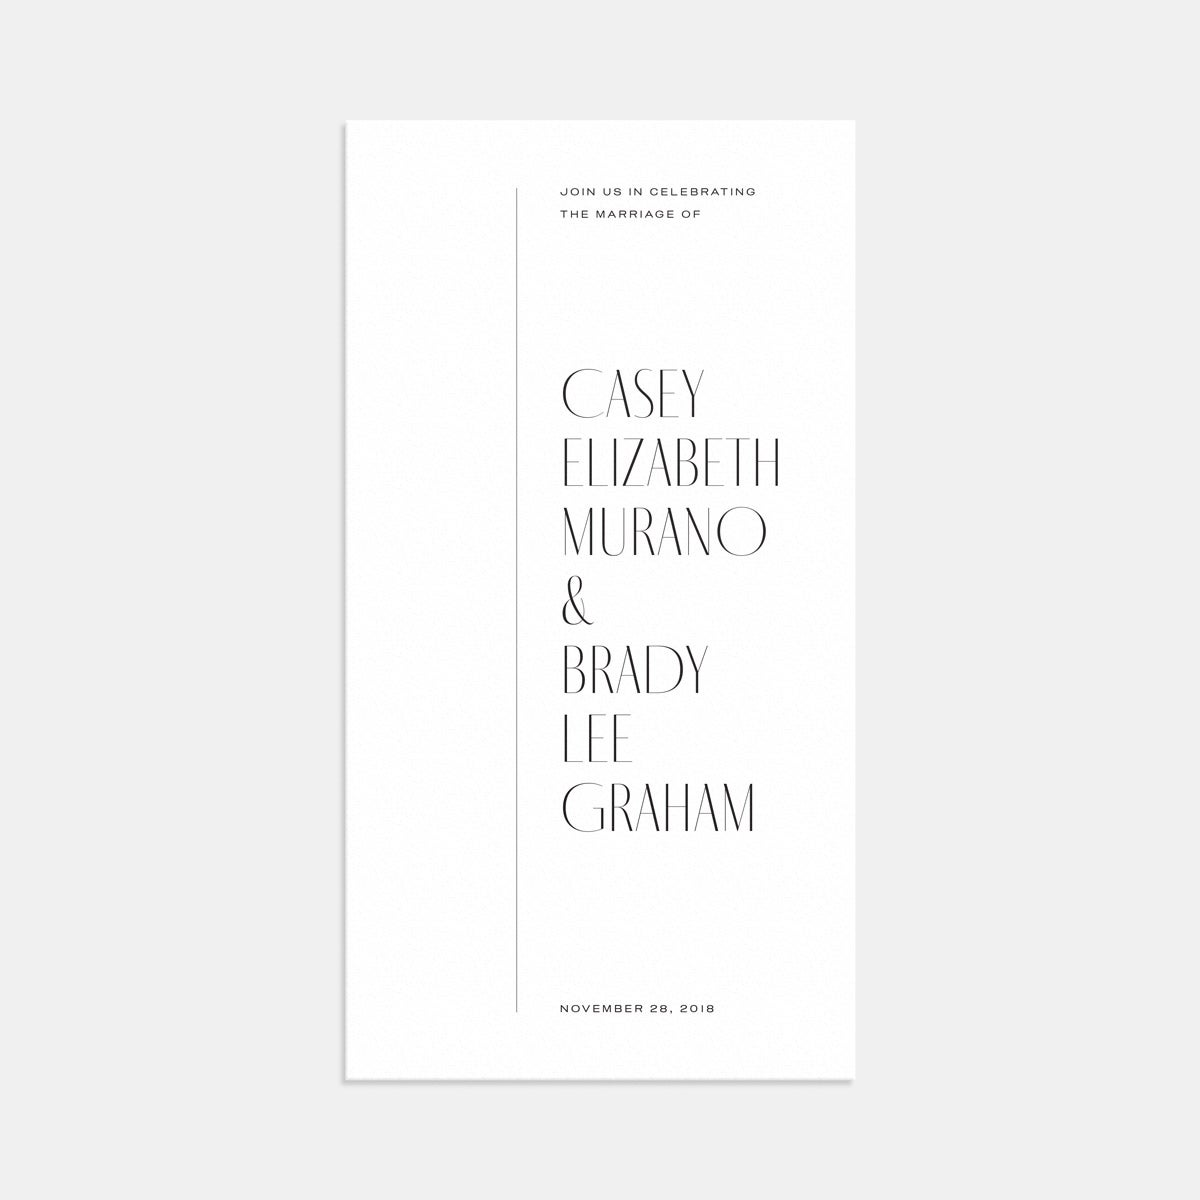 Image for Minimal Wedding Invitation